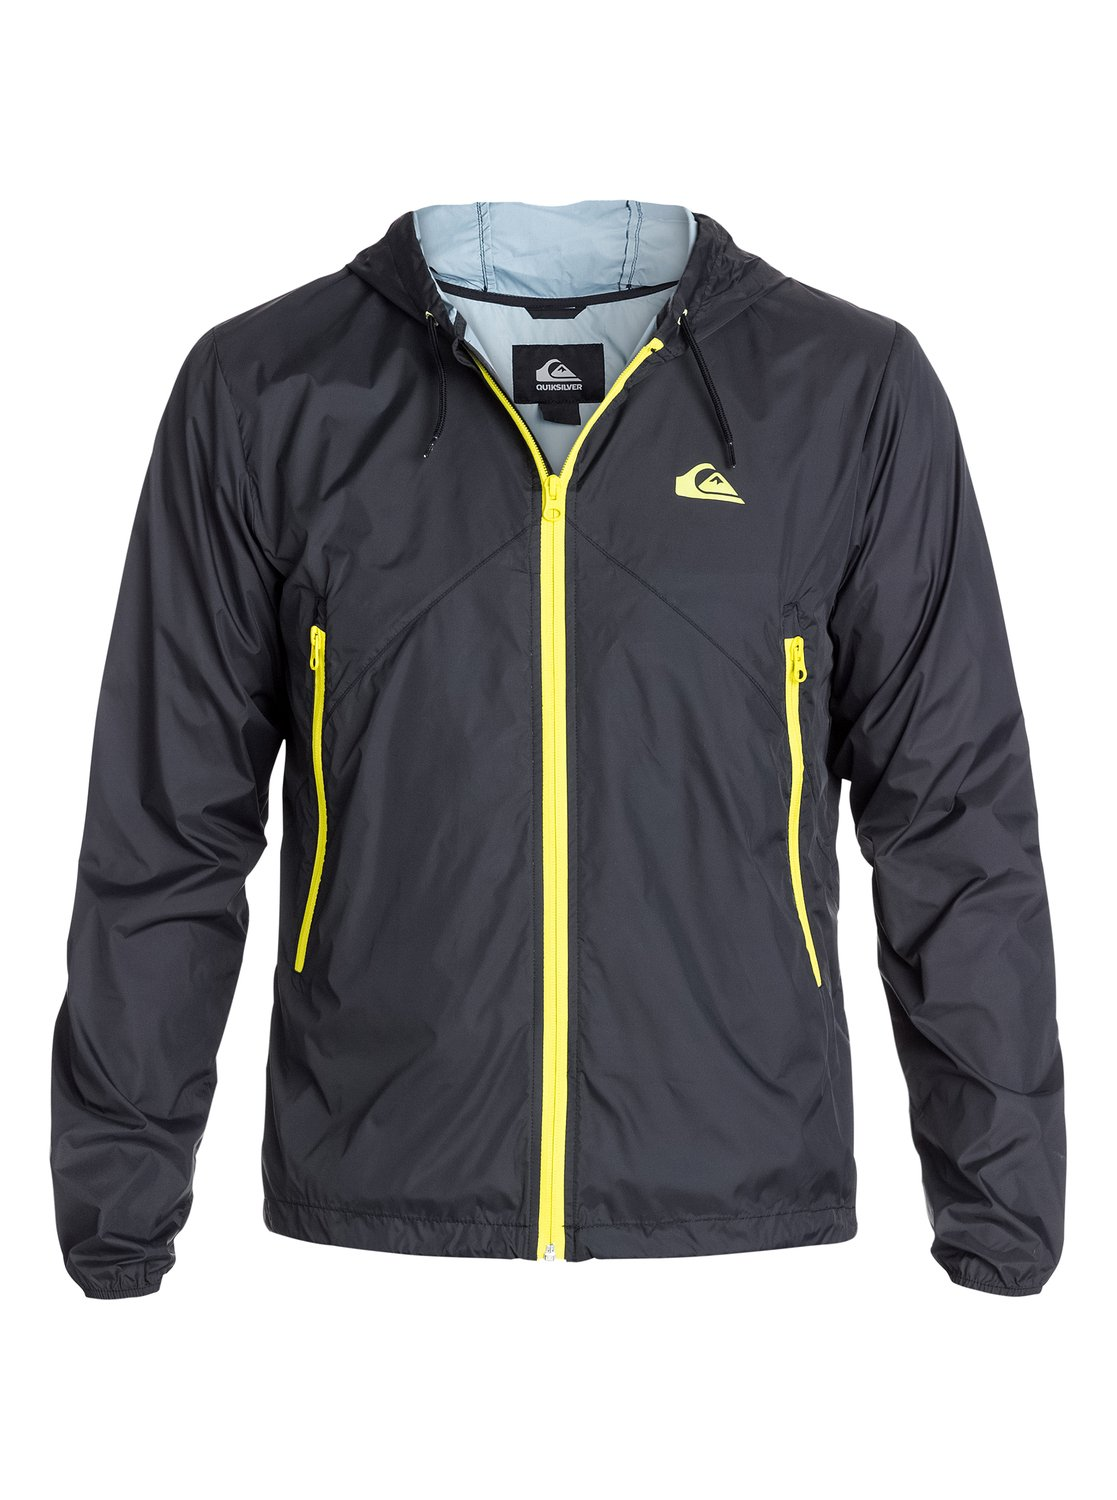 Everyday Jacket - Quiksilver������� ������-�������� �� Quiksilver � ������� �� ��������� ����� 2015. ��������������: ������������� ������, ����� � ��������� �� �����, ����� ����.<br>